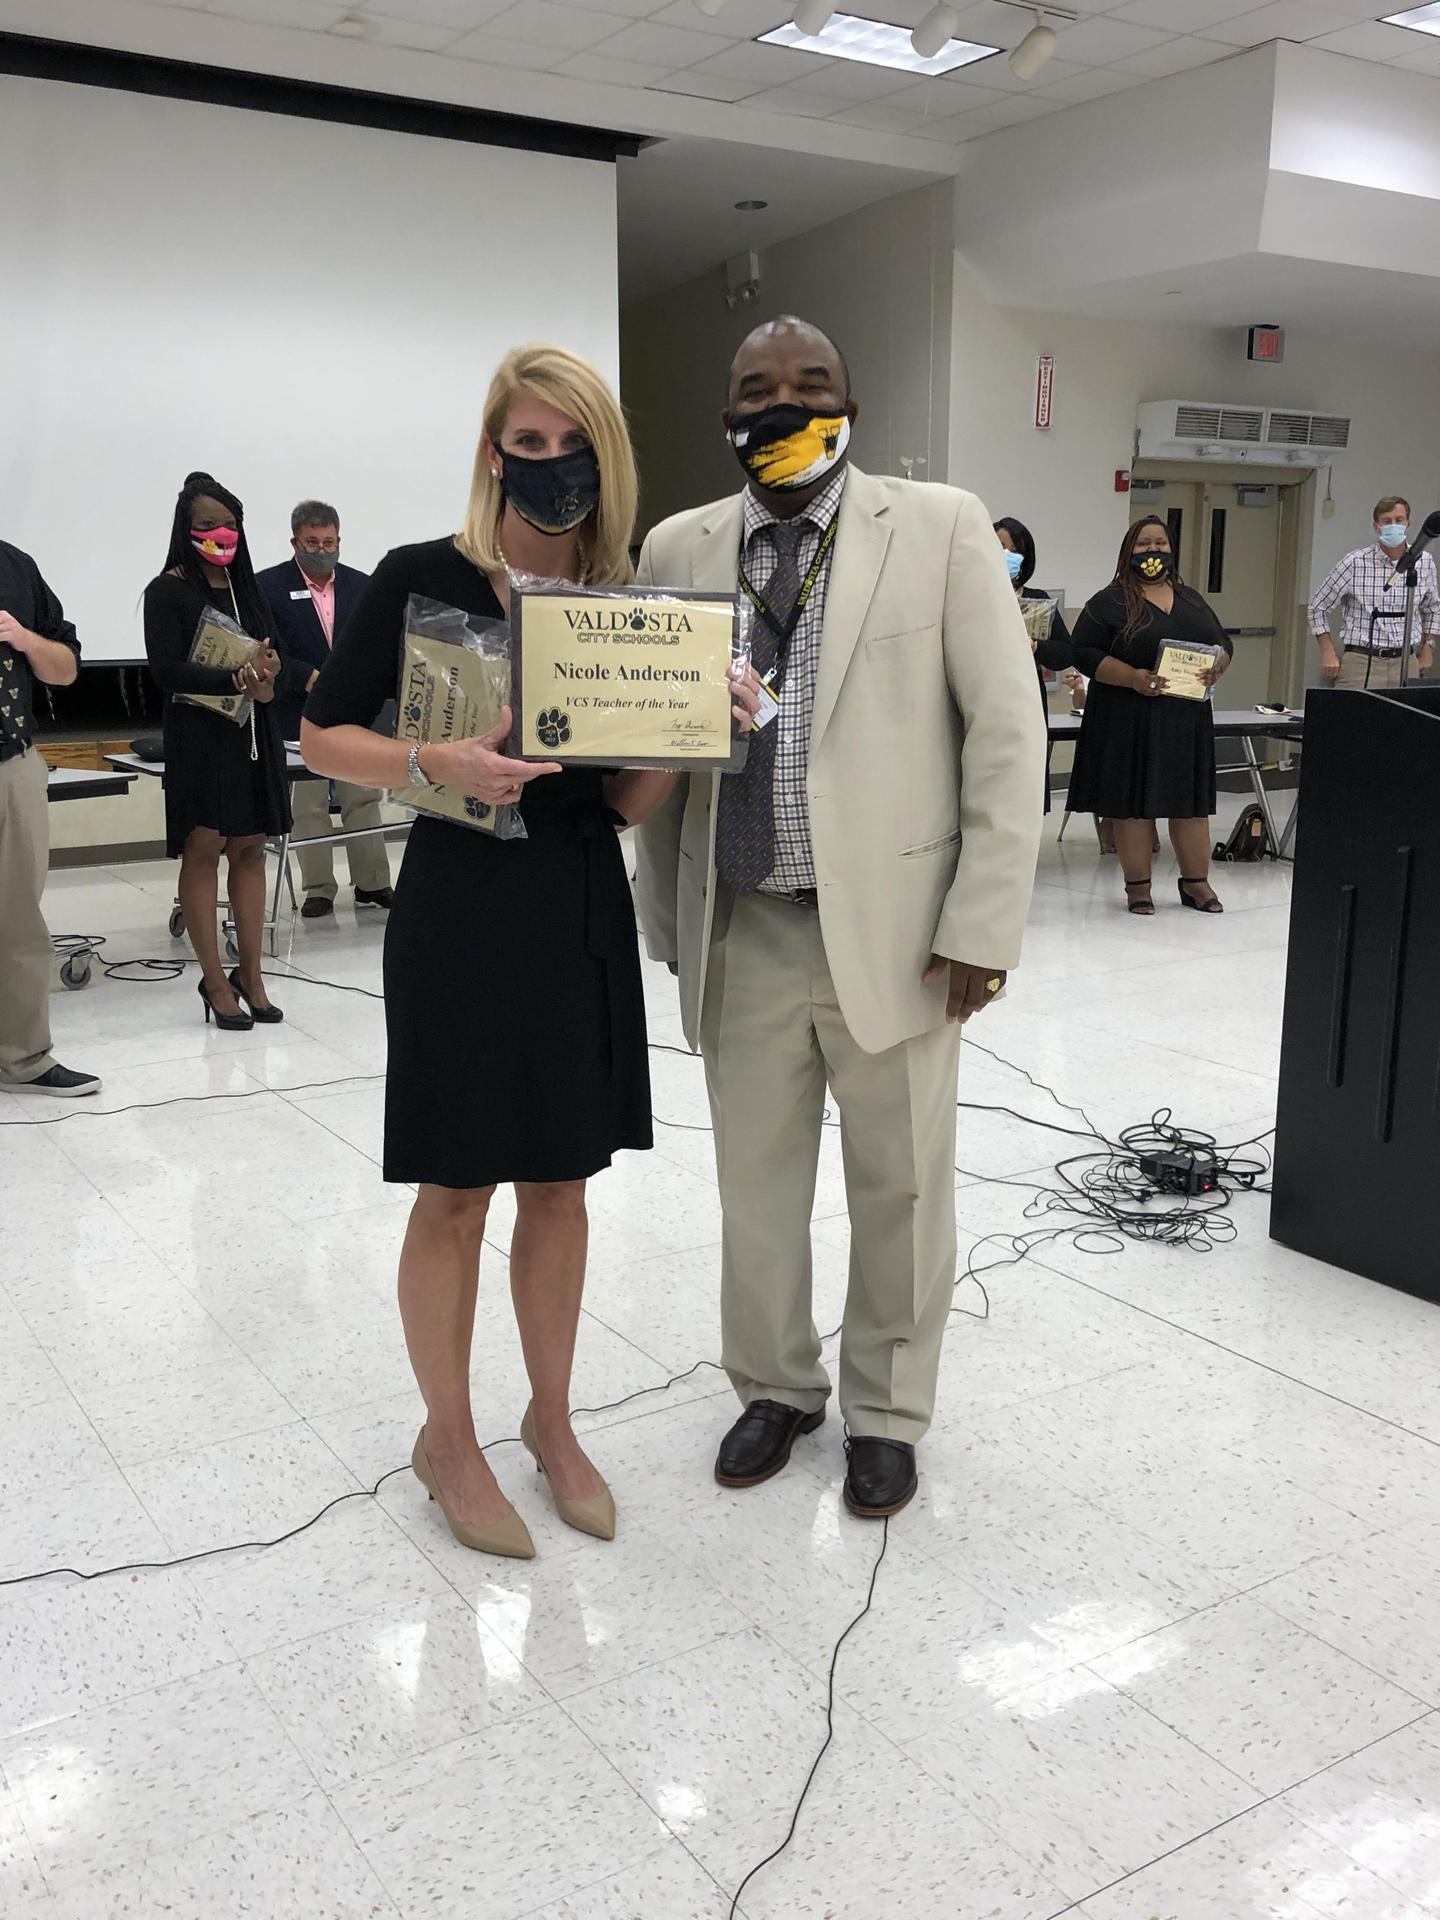 Nicole Anderson, 2020.21 VCS Teacher of the Year